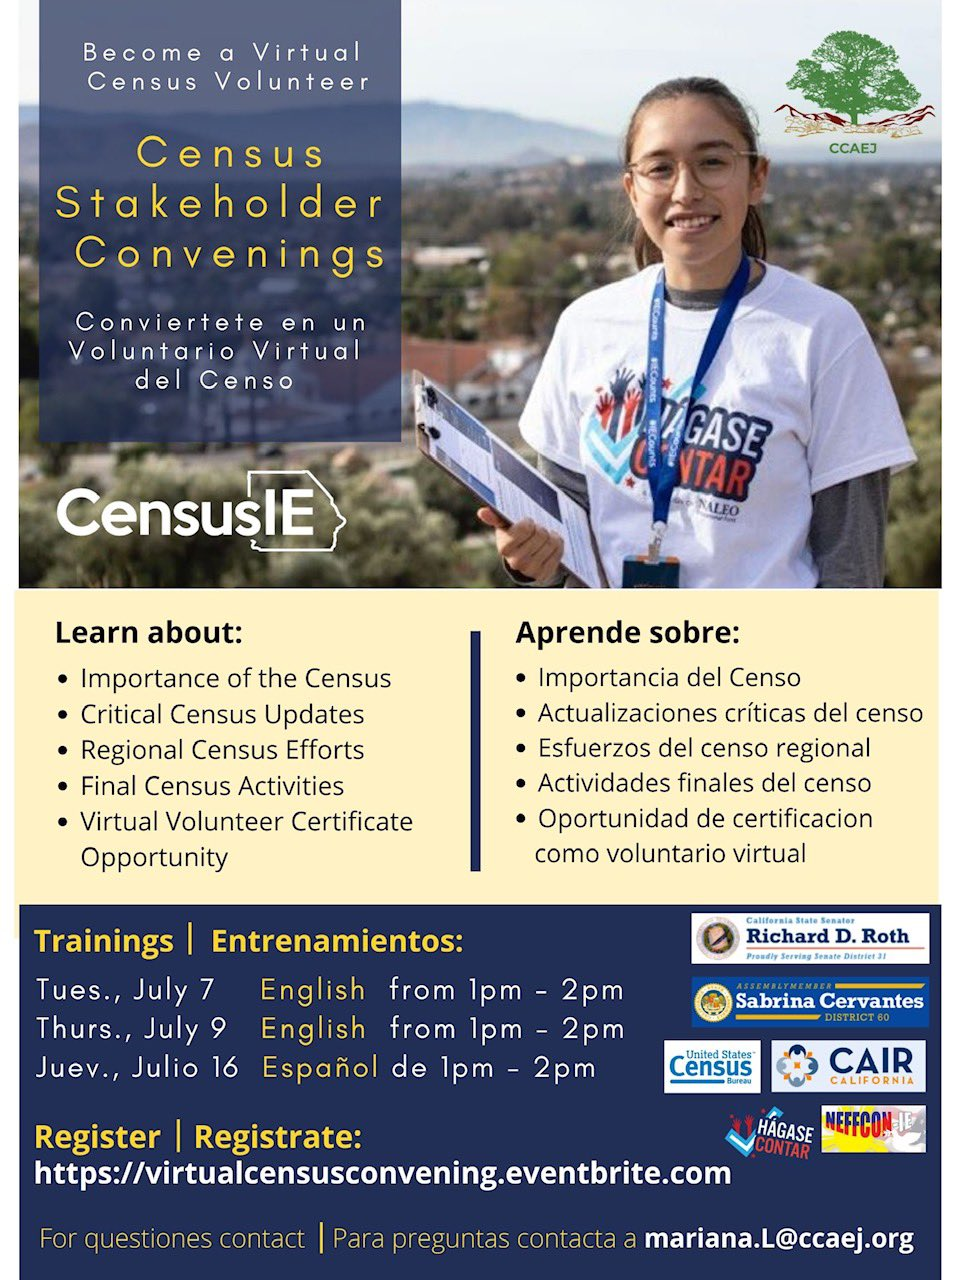 Census Stakeholder Convenings